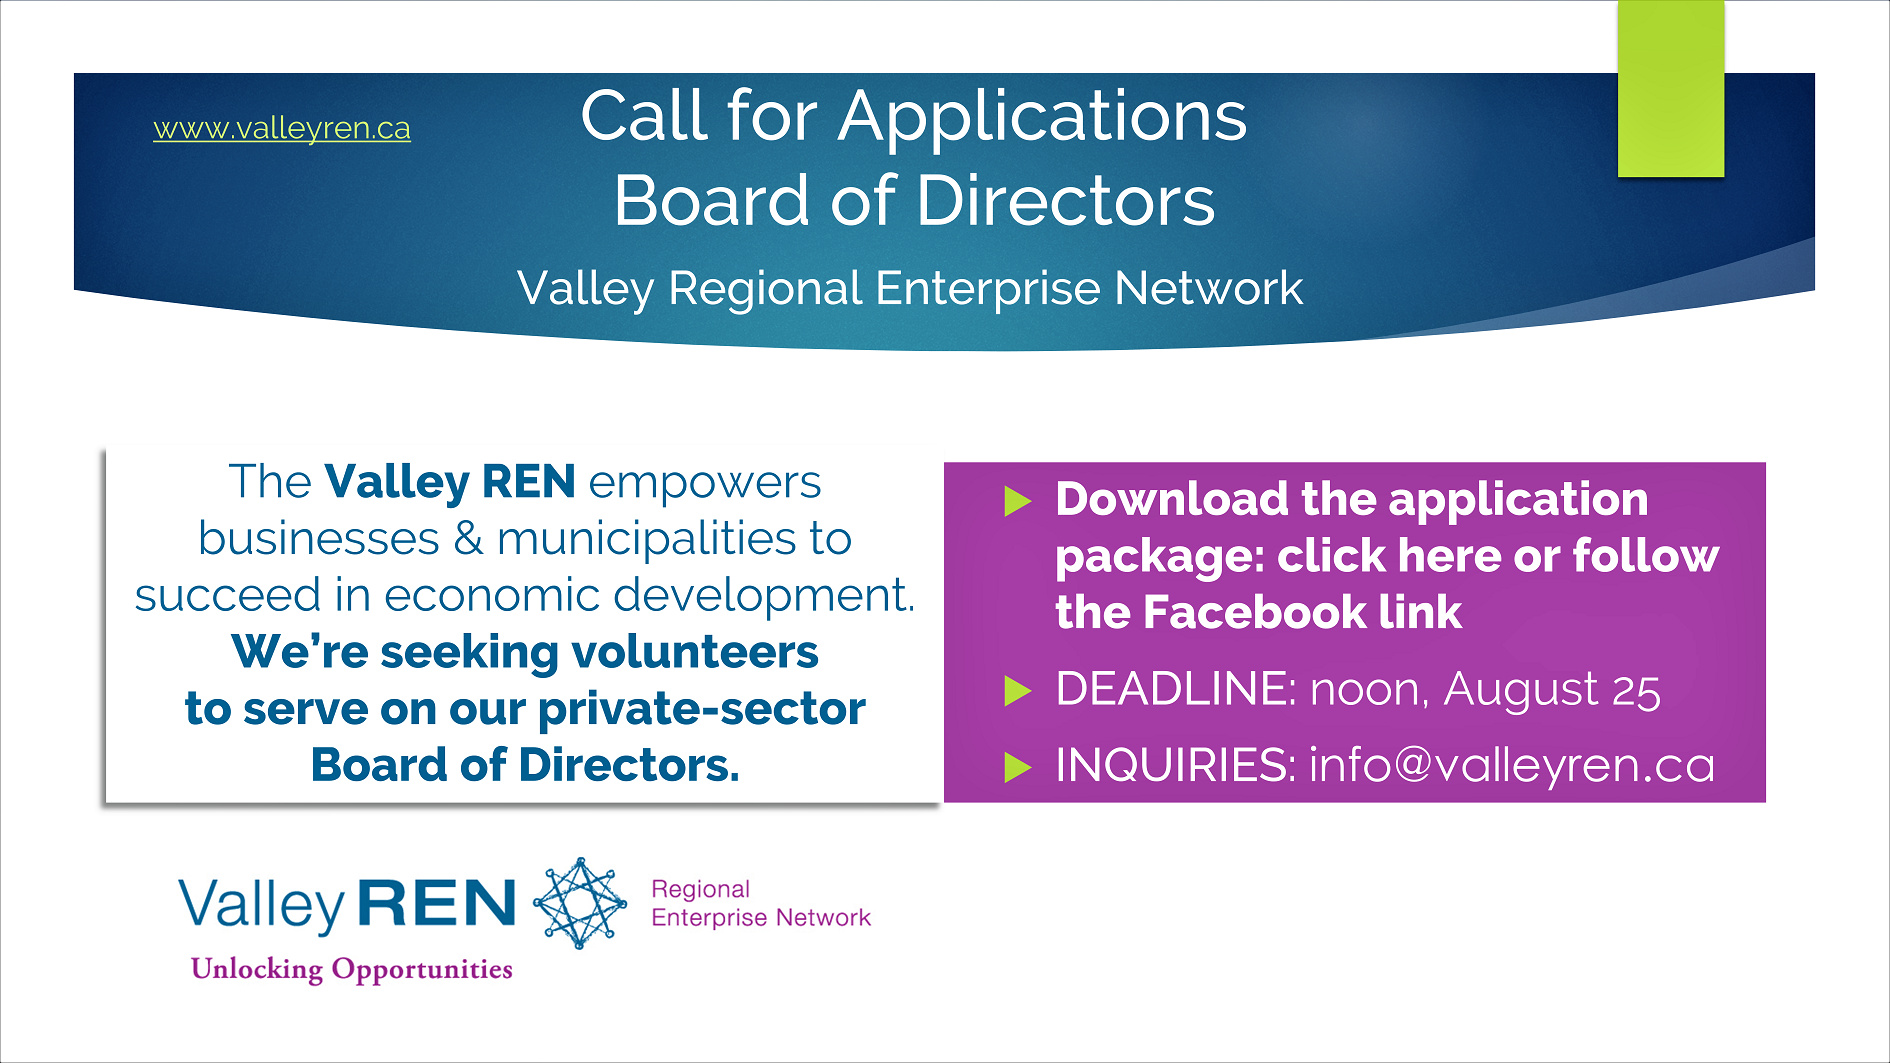 1890 Valley Regional Enterprise Network Board Recruitment graphic The deadline for applications has been extended to noon on Friday, August 25